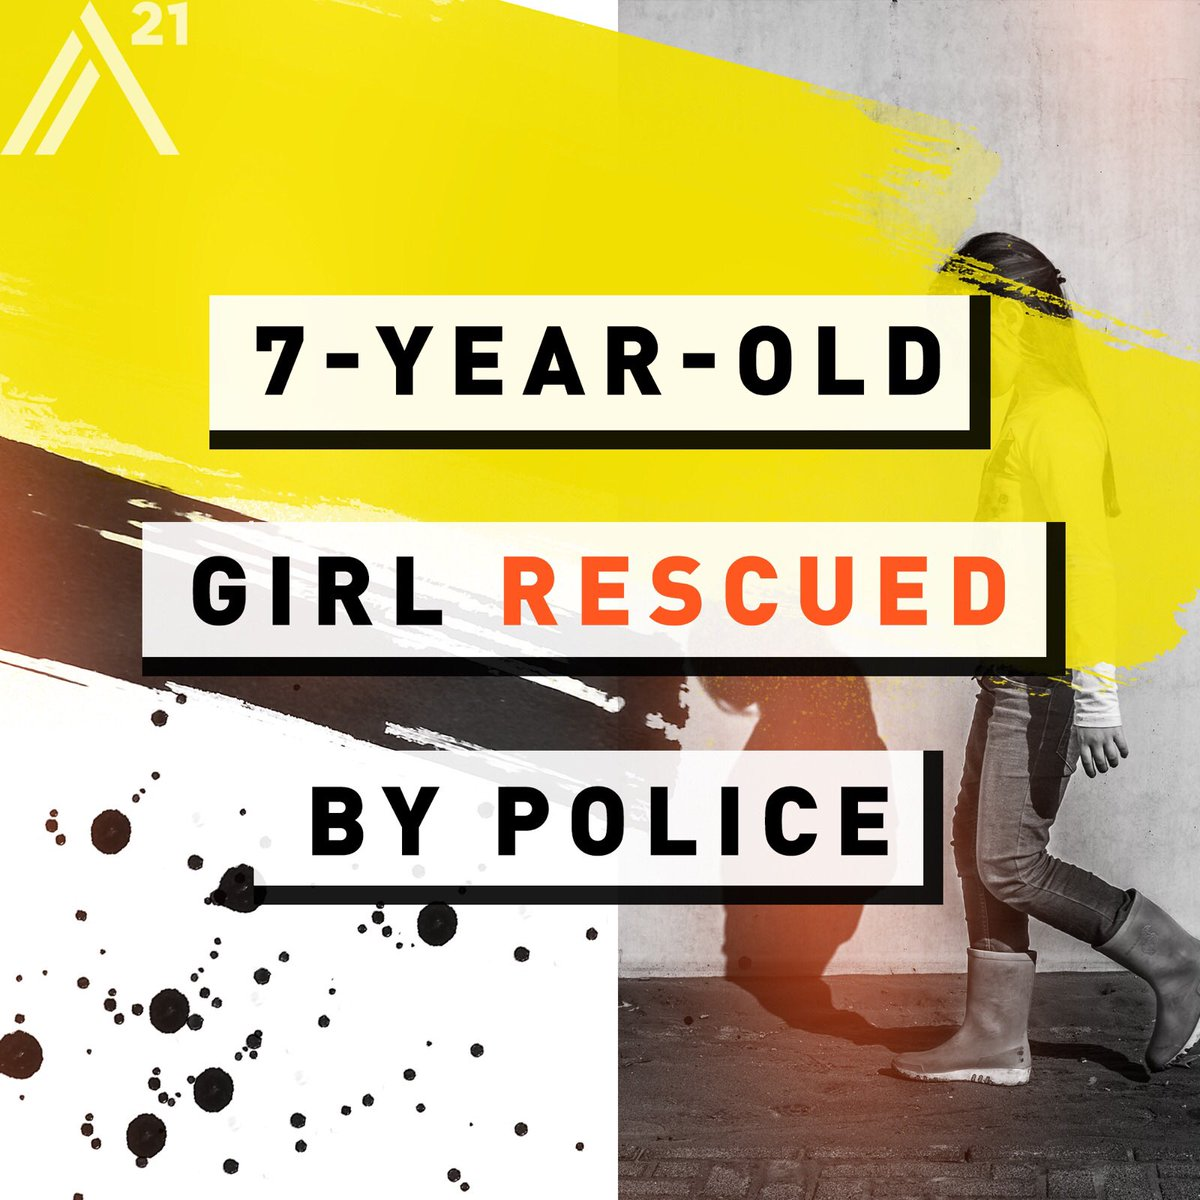 #BREAKINGNEWS: A 7-year-old girl is now safe! <br>http://pic.twitter.com/GzpxAmYzj9